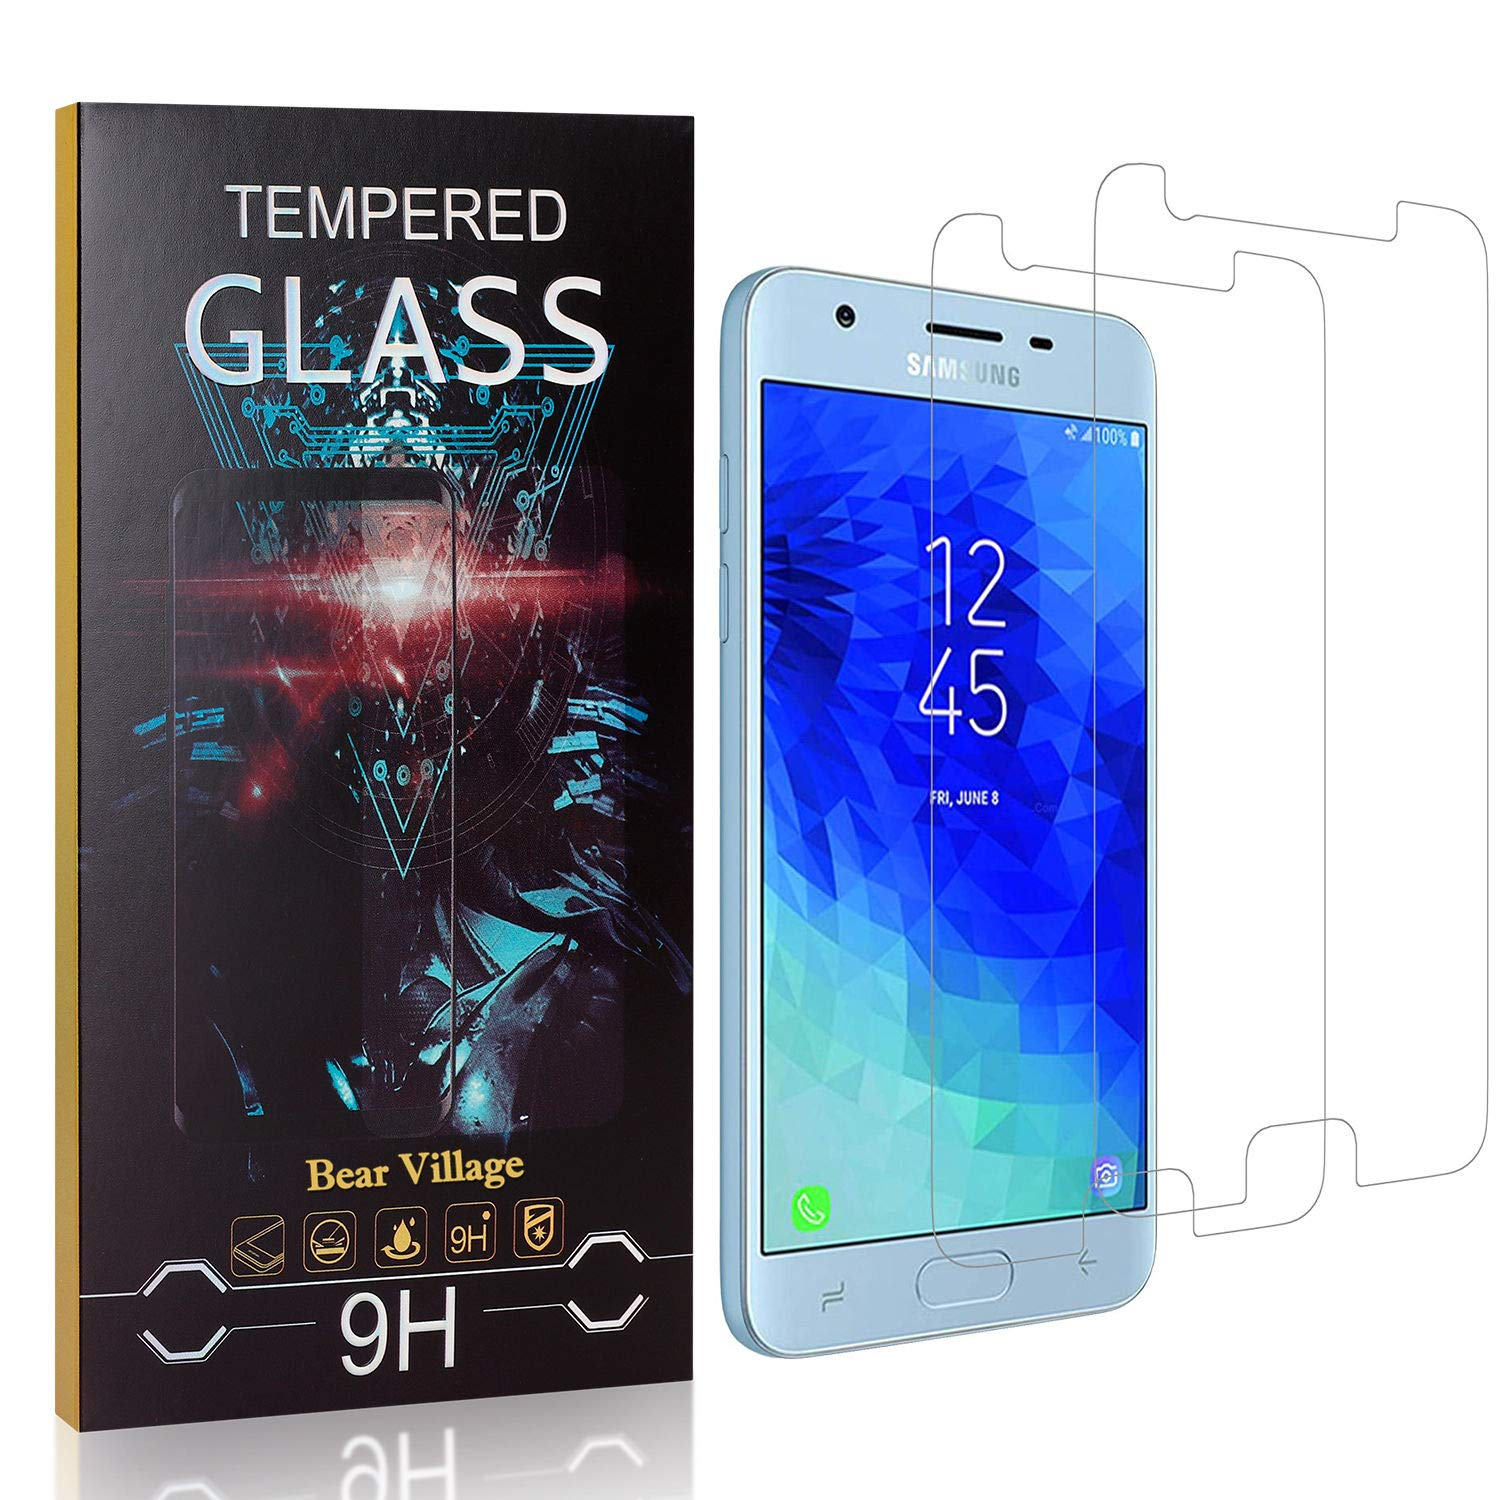 99.99/% Clarity Bear Village 9H Hardness Bubble Free Tempered Glass Screen Protector Film for Samsung Galaxy J3 2018 2 Pack Screen Protector for Galaxy J3 2018